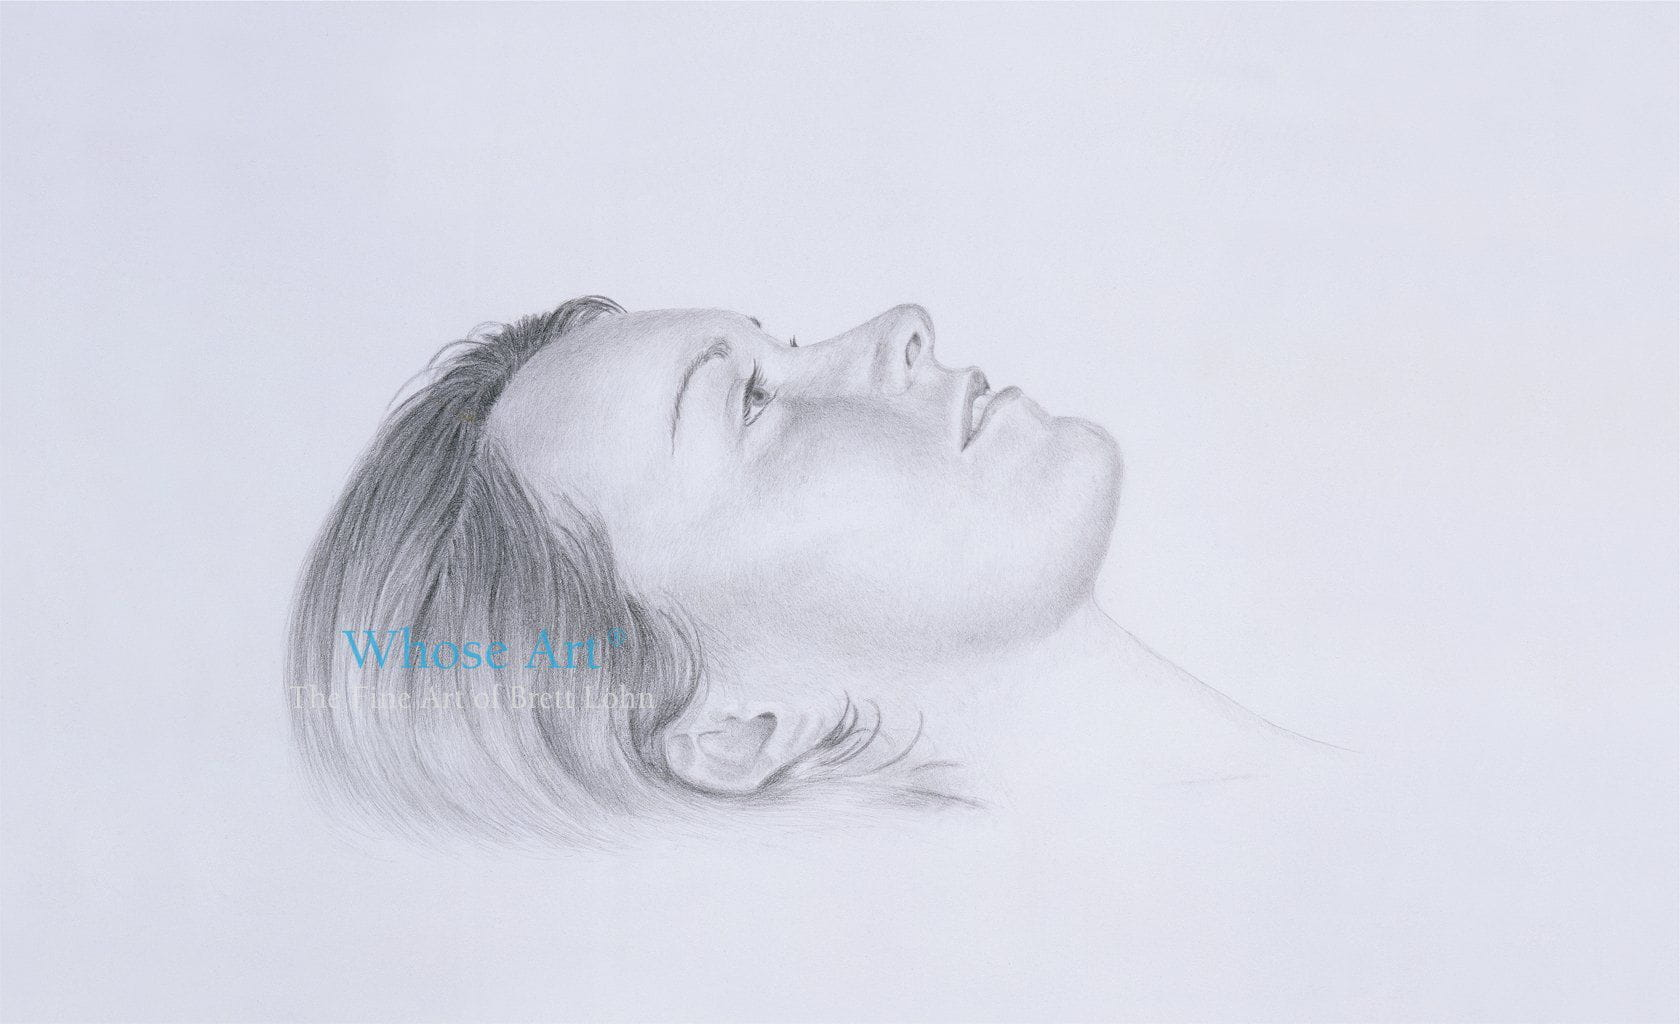 Pencil drawing greeting card featuring a drawing of a daydreaming girl's face as she lies down, looking upwards